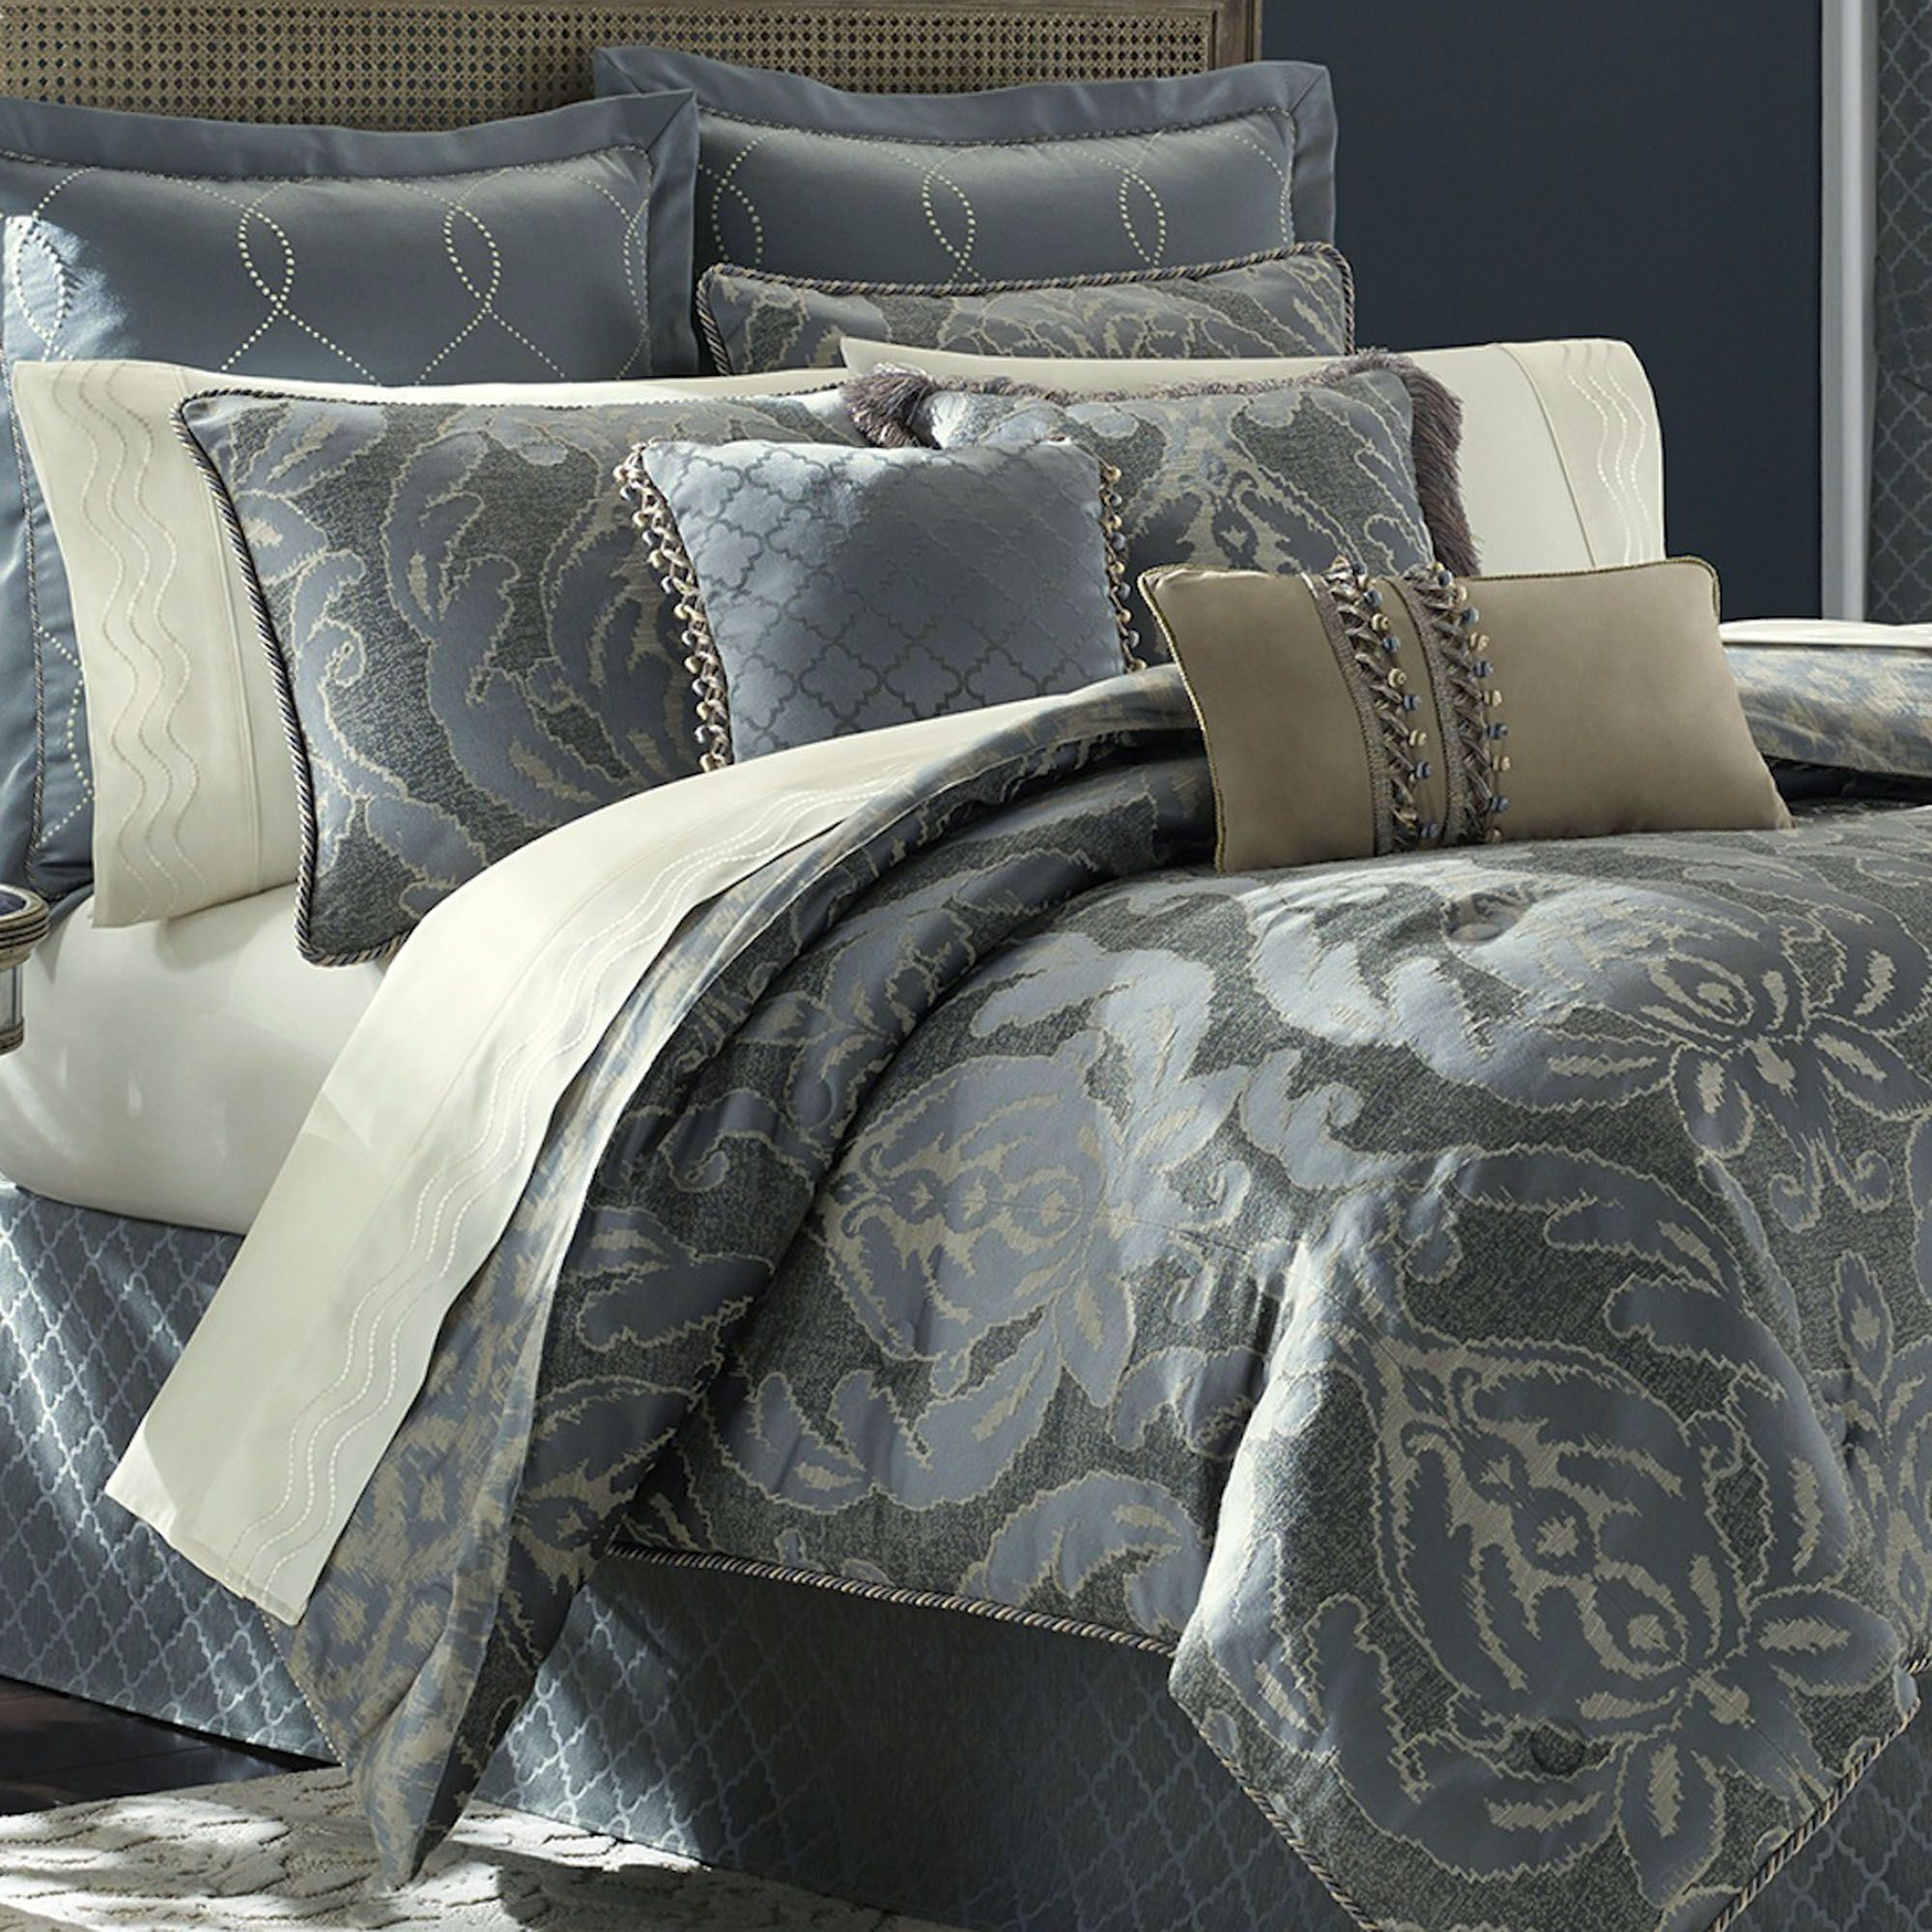 comforter set quilt regaling blue navy bedding plaid cover sets king and sensational green kingston white cotton stupendous checkered